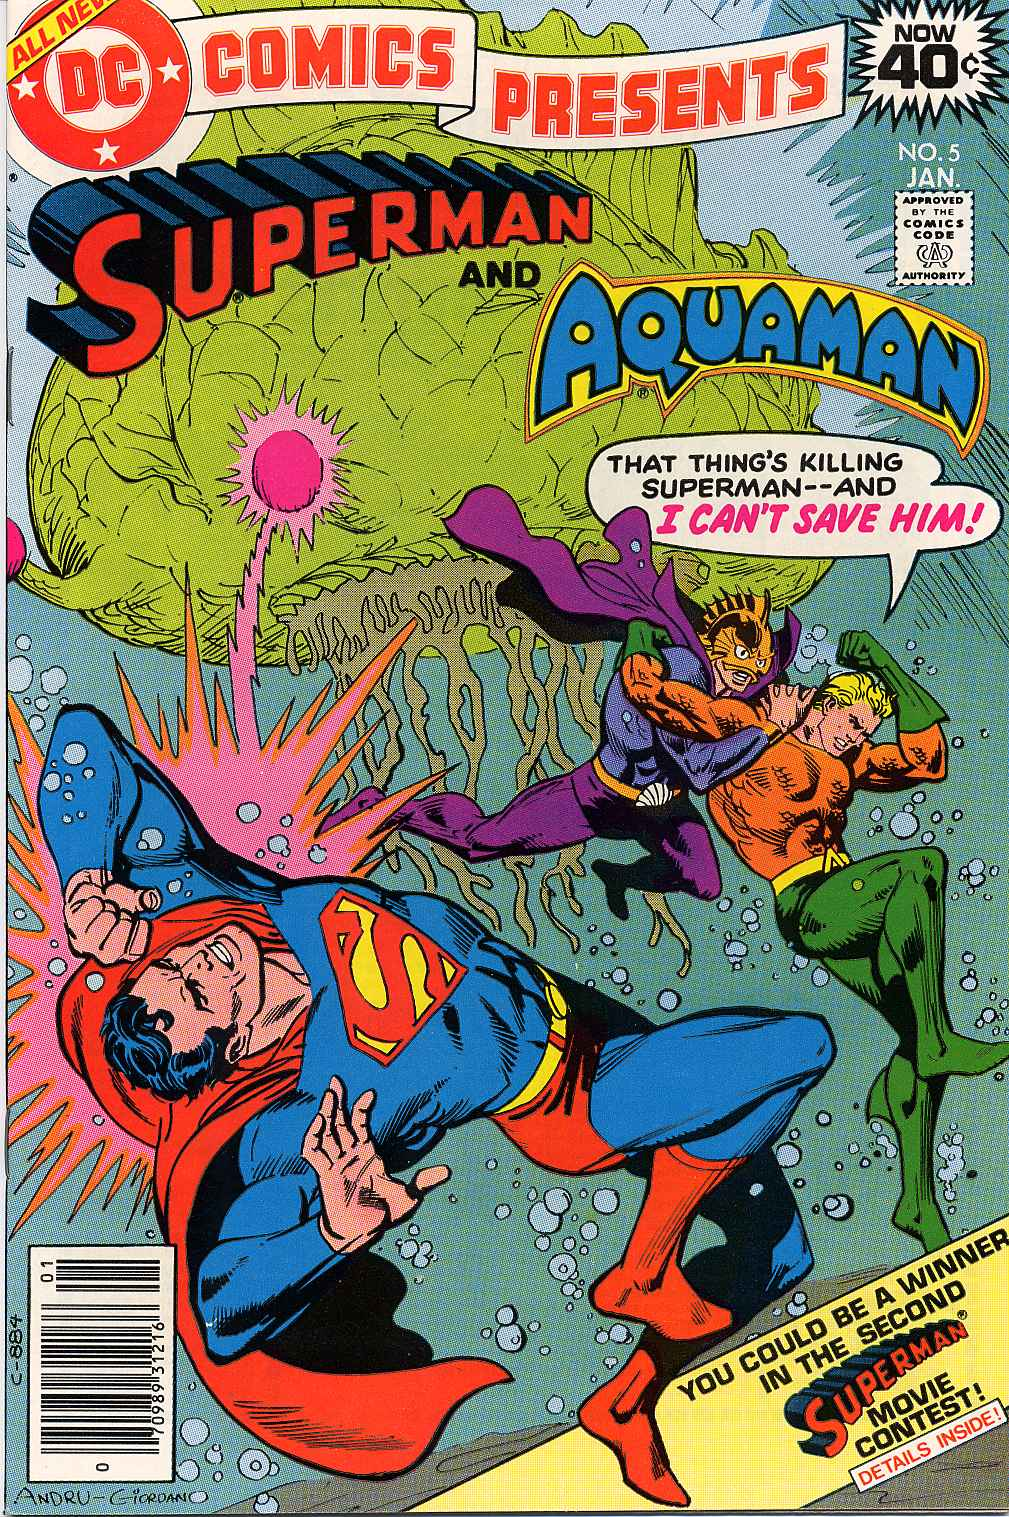 DC Comics Presents #5 featuring Superman and Aquaman, cover by Ross Andru and Dick Giordano